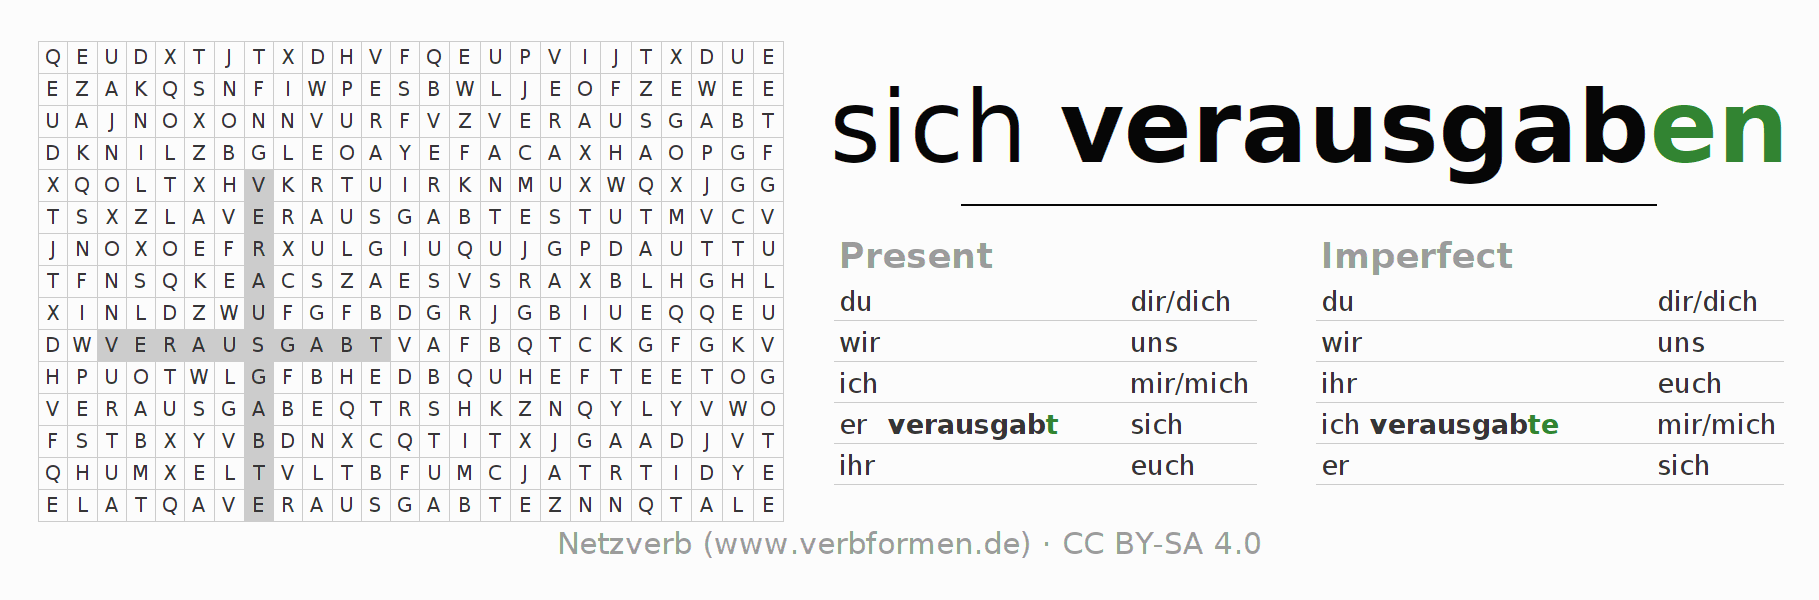 Word search puzzle for the conjugation of the verb sich verausgaben